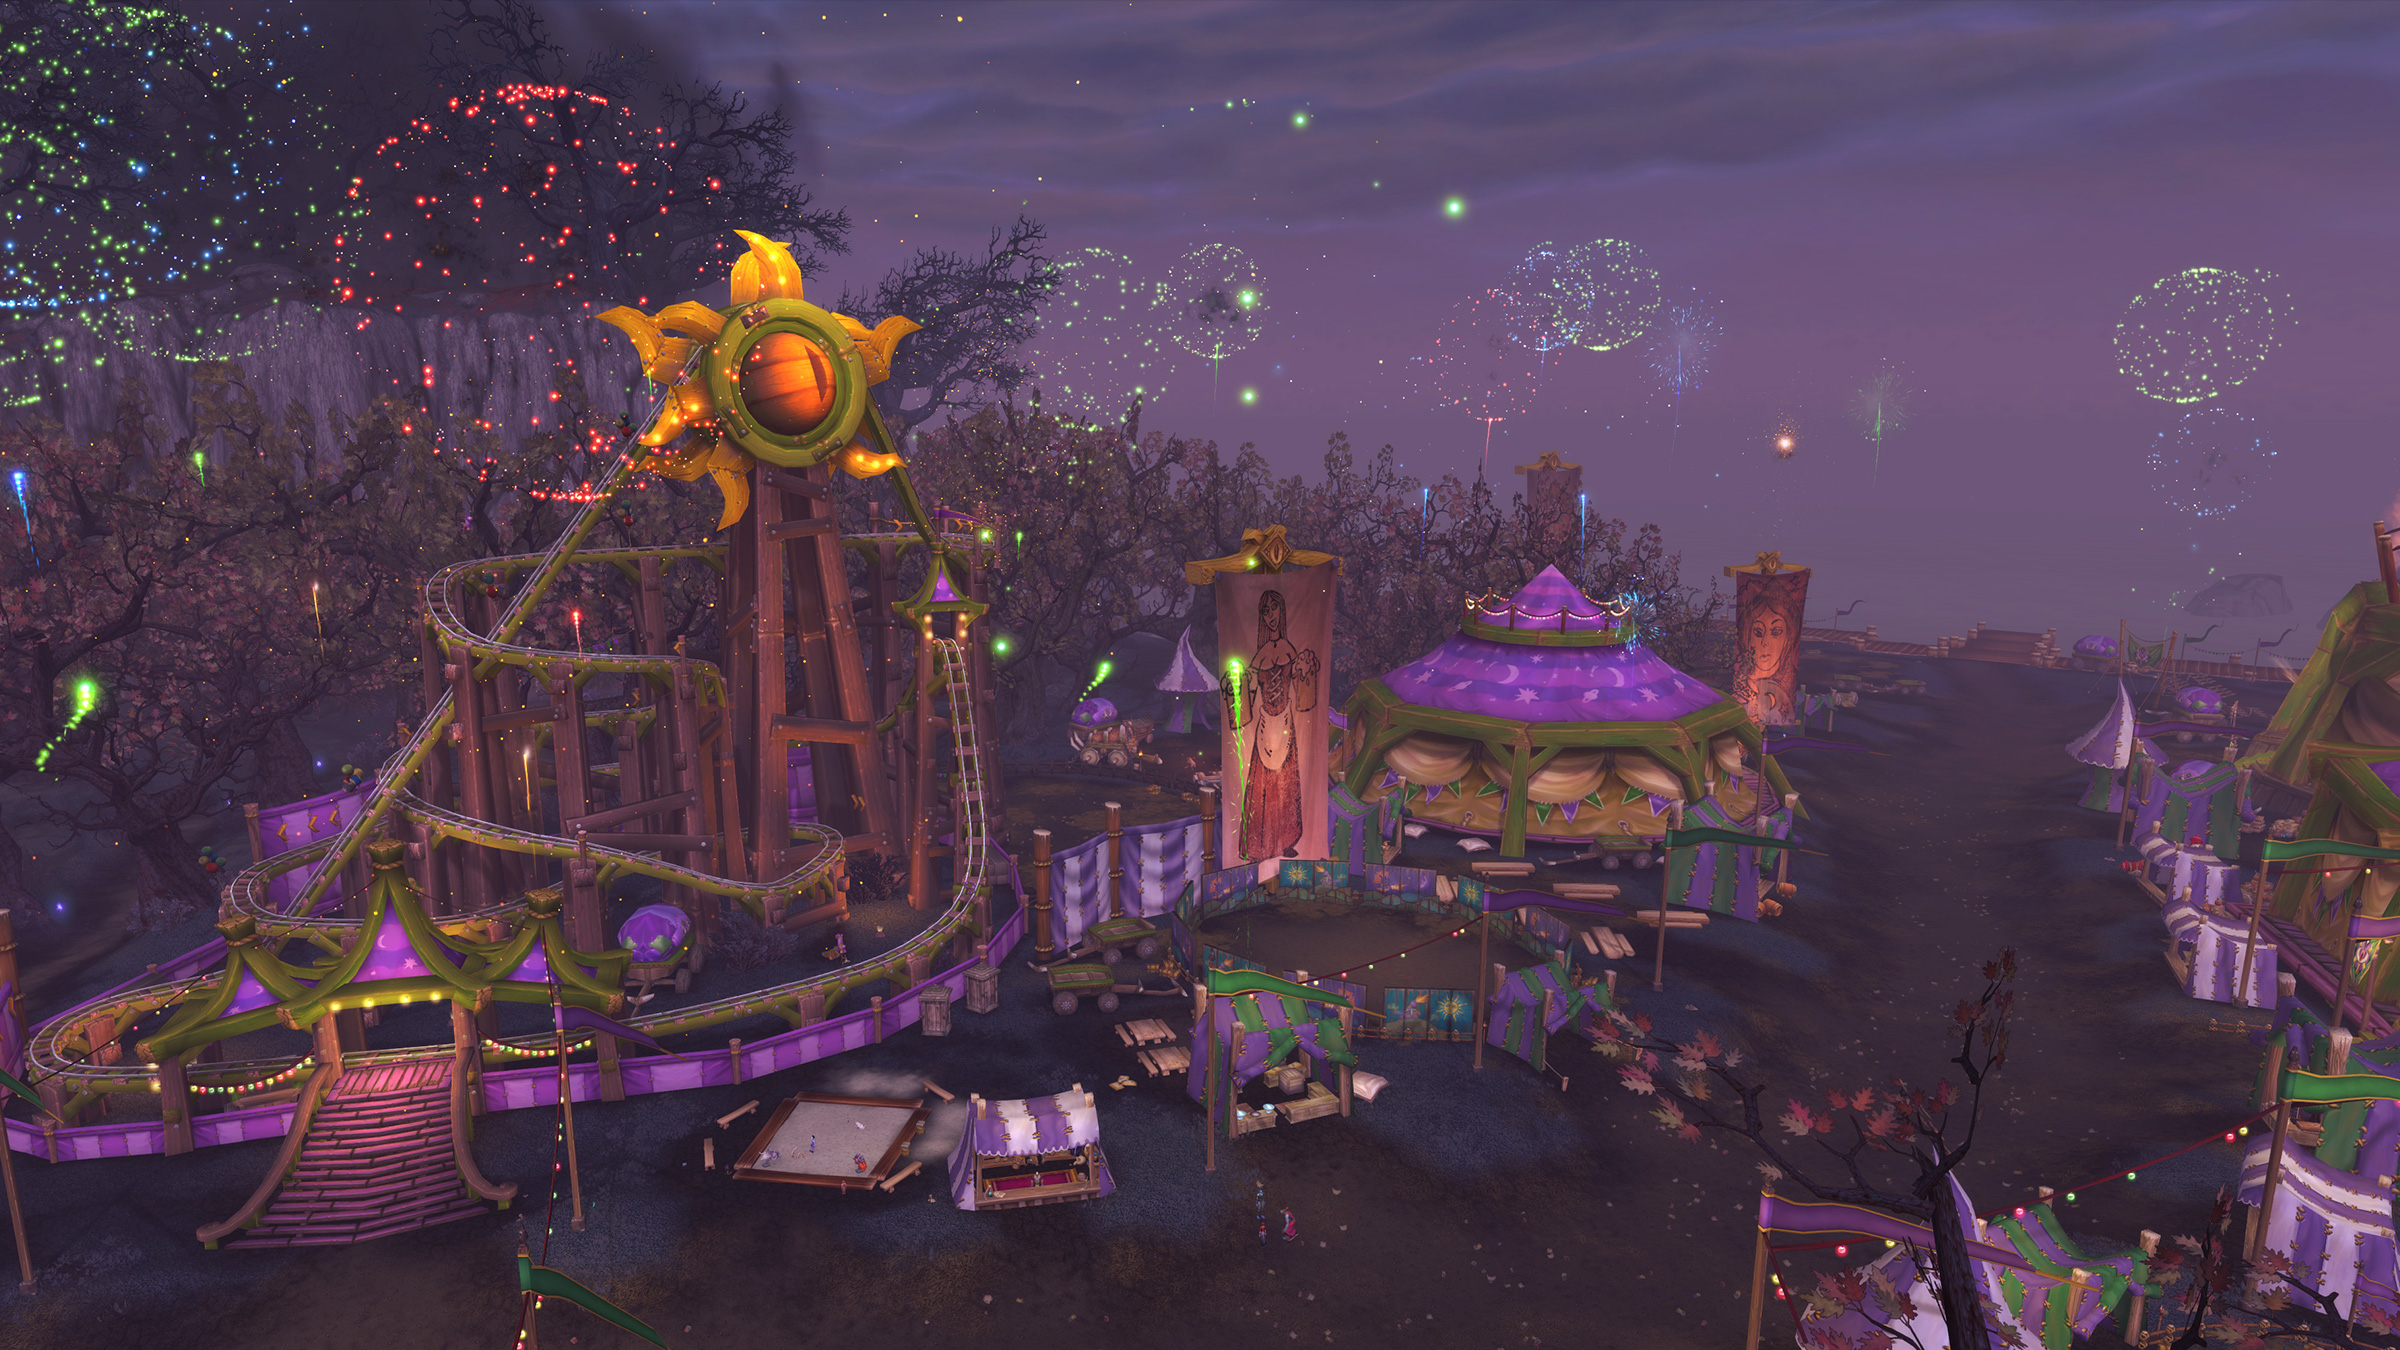 Meet Me at the Darkmoon Faire!